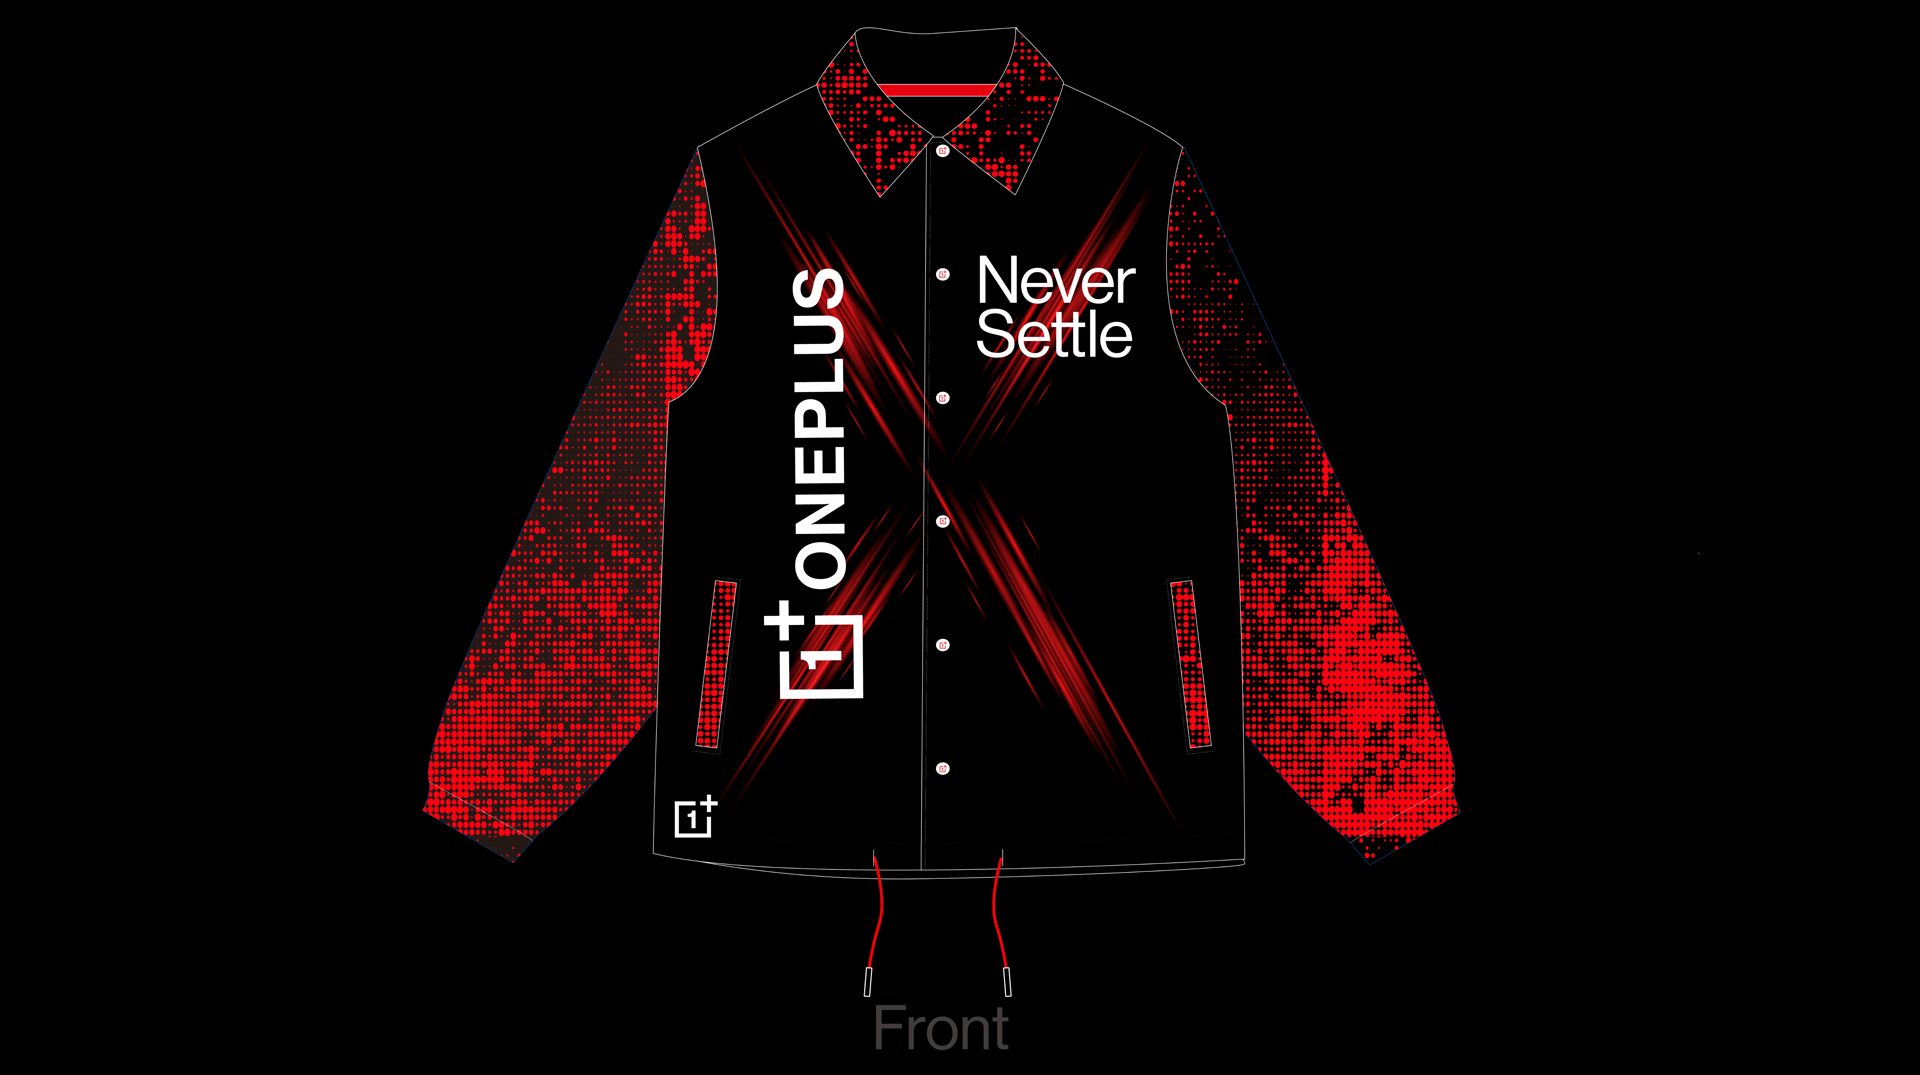 OnePlus-Jacket-Front-Opt.png